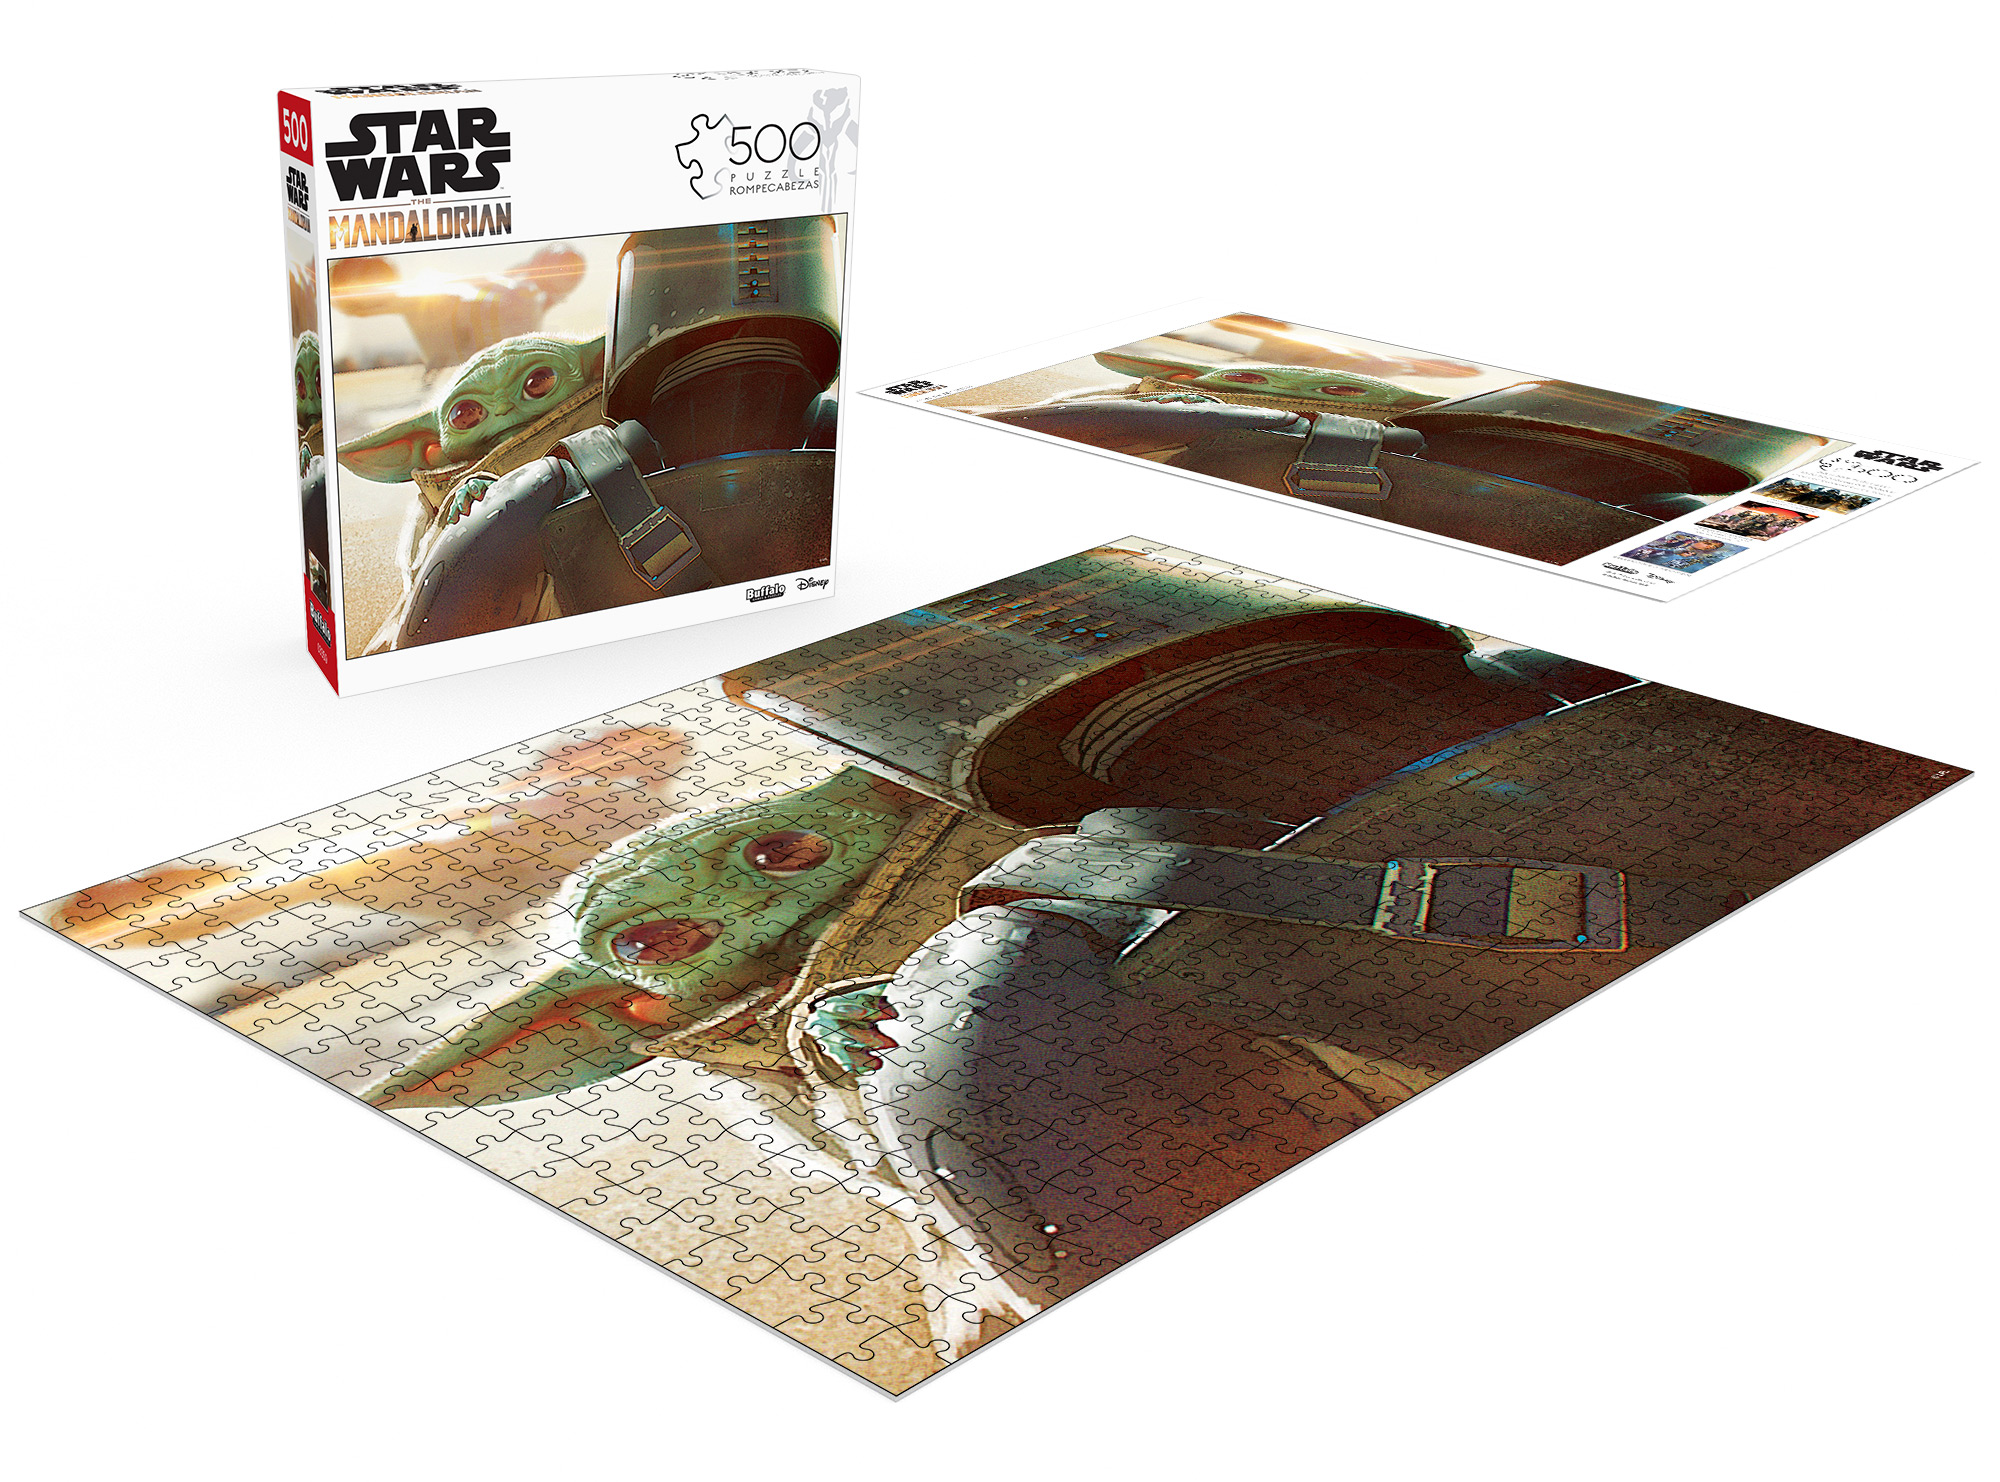 The Child 500 Piece Jigsaw Puzzle for Adults /& for Kids Age 10 and Up Ravensburger 16561 Star Wars The Mandalorian